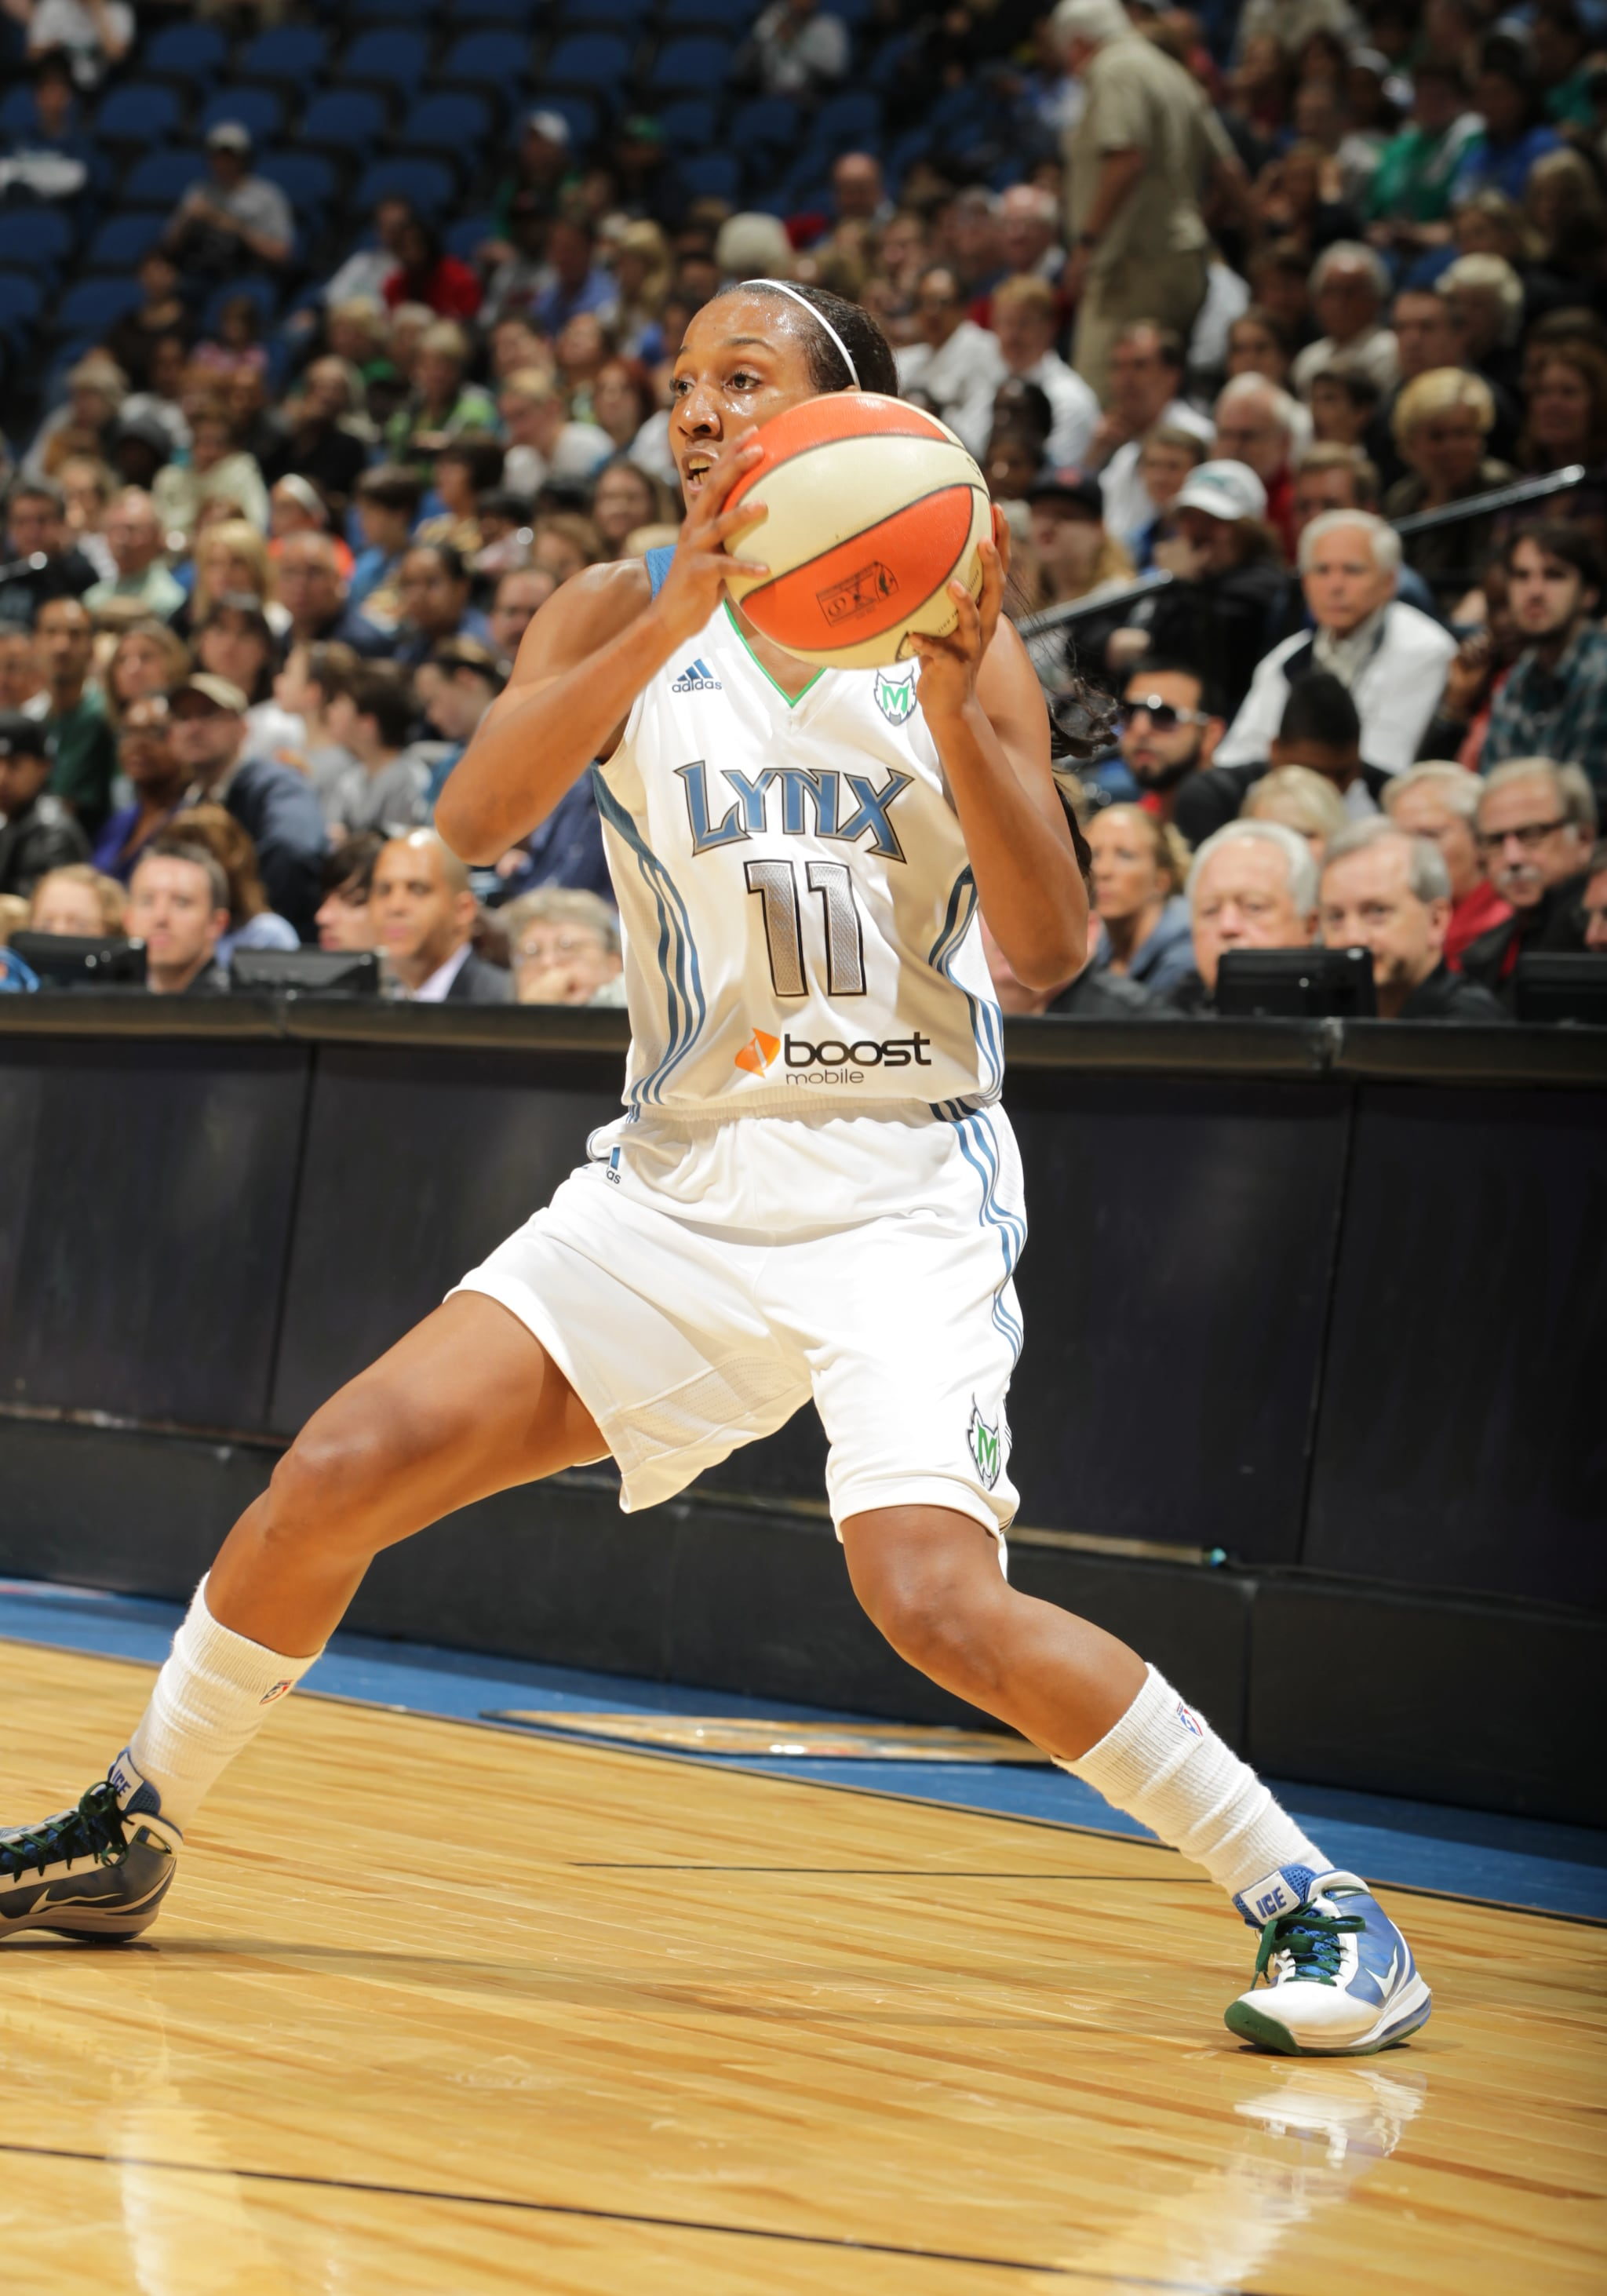 2012's Home-Opener: Lynx guard Candice Wiggins came off the bench to score 11 points, including going 3-of-5 from beyond the arc.